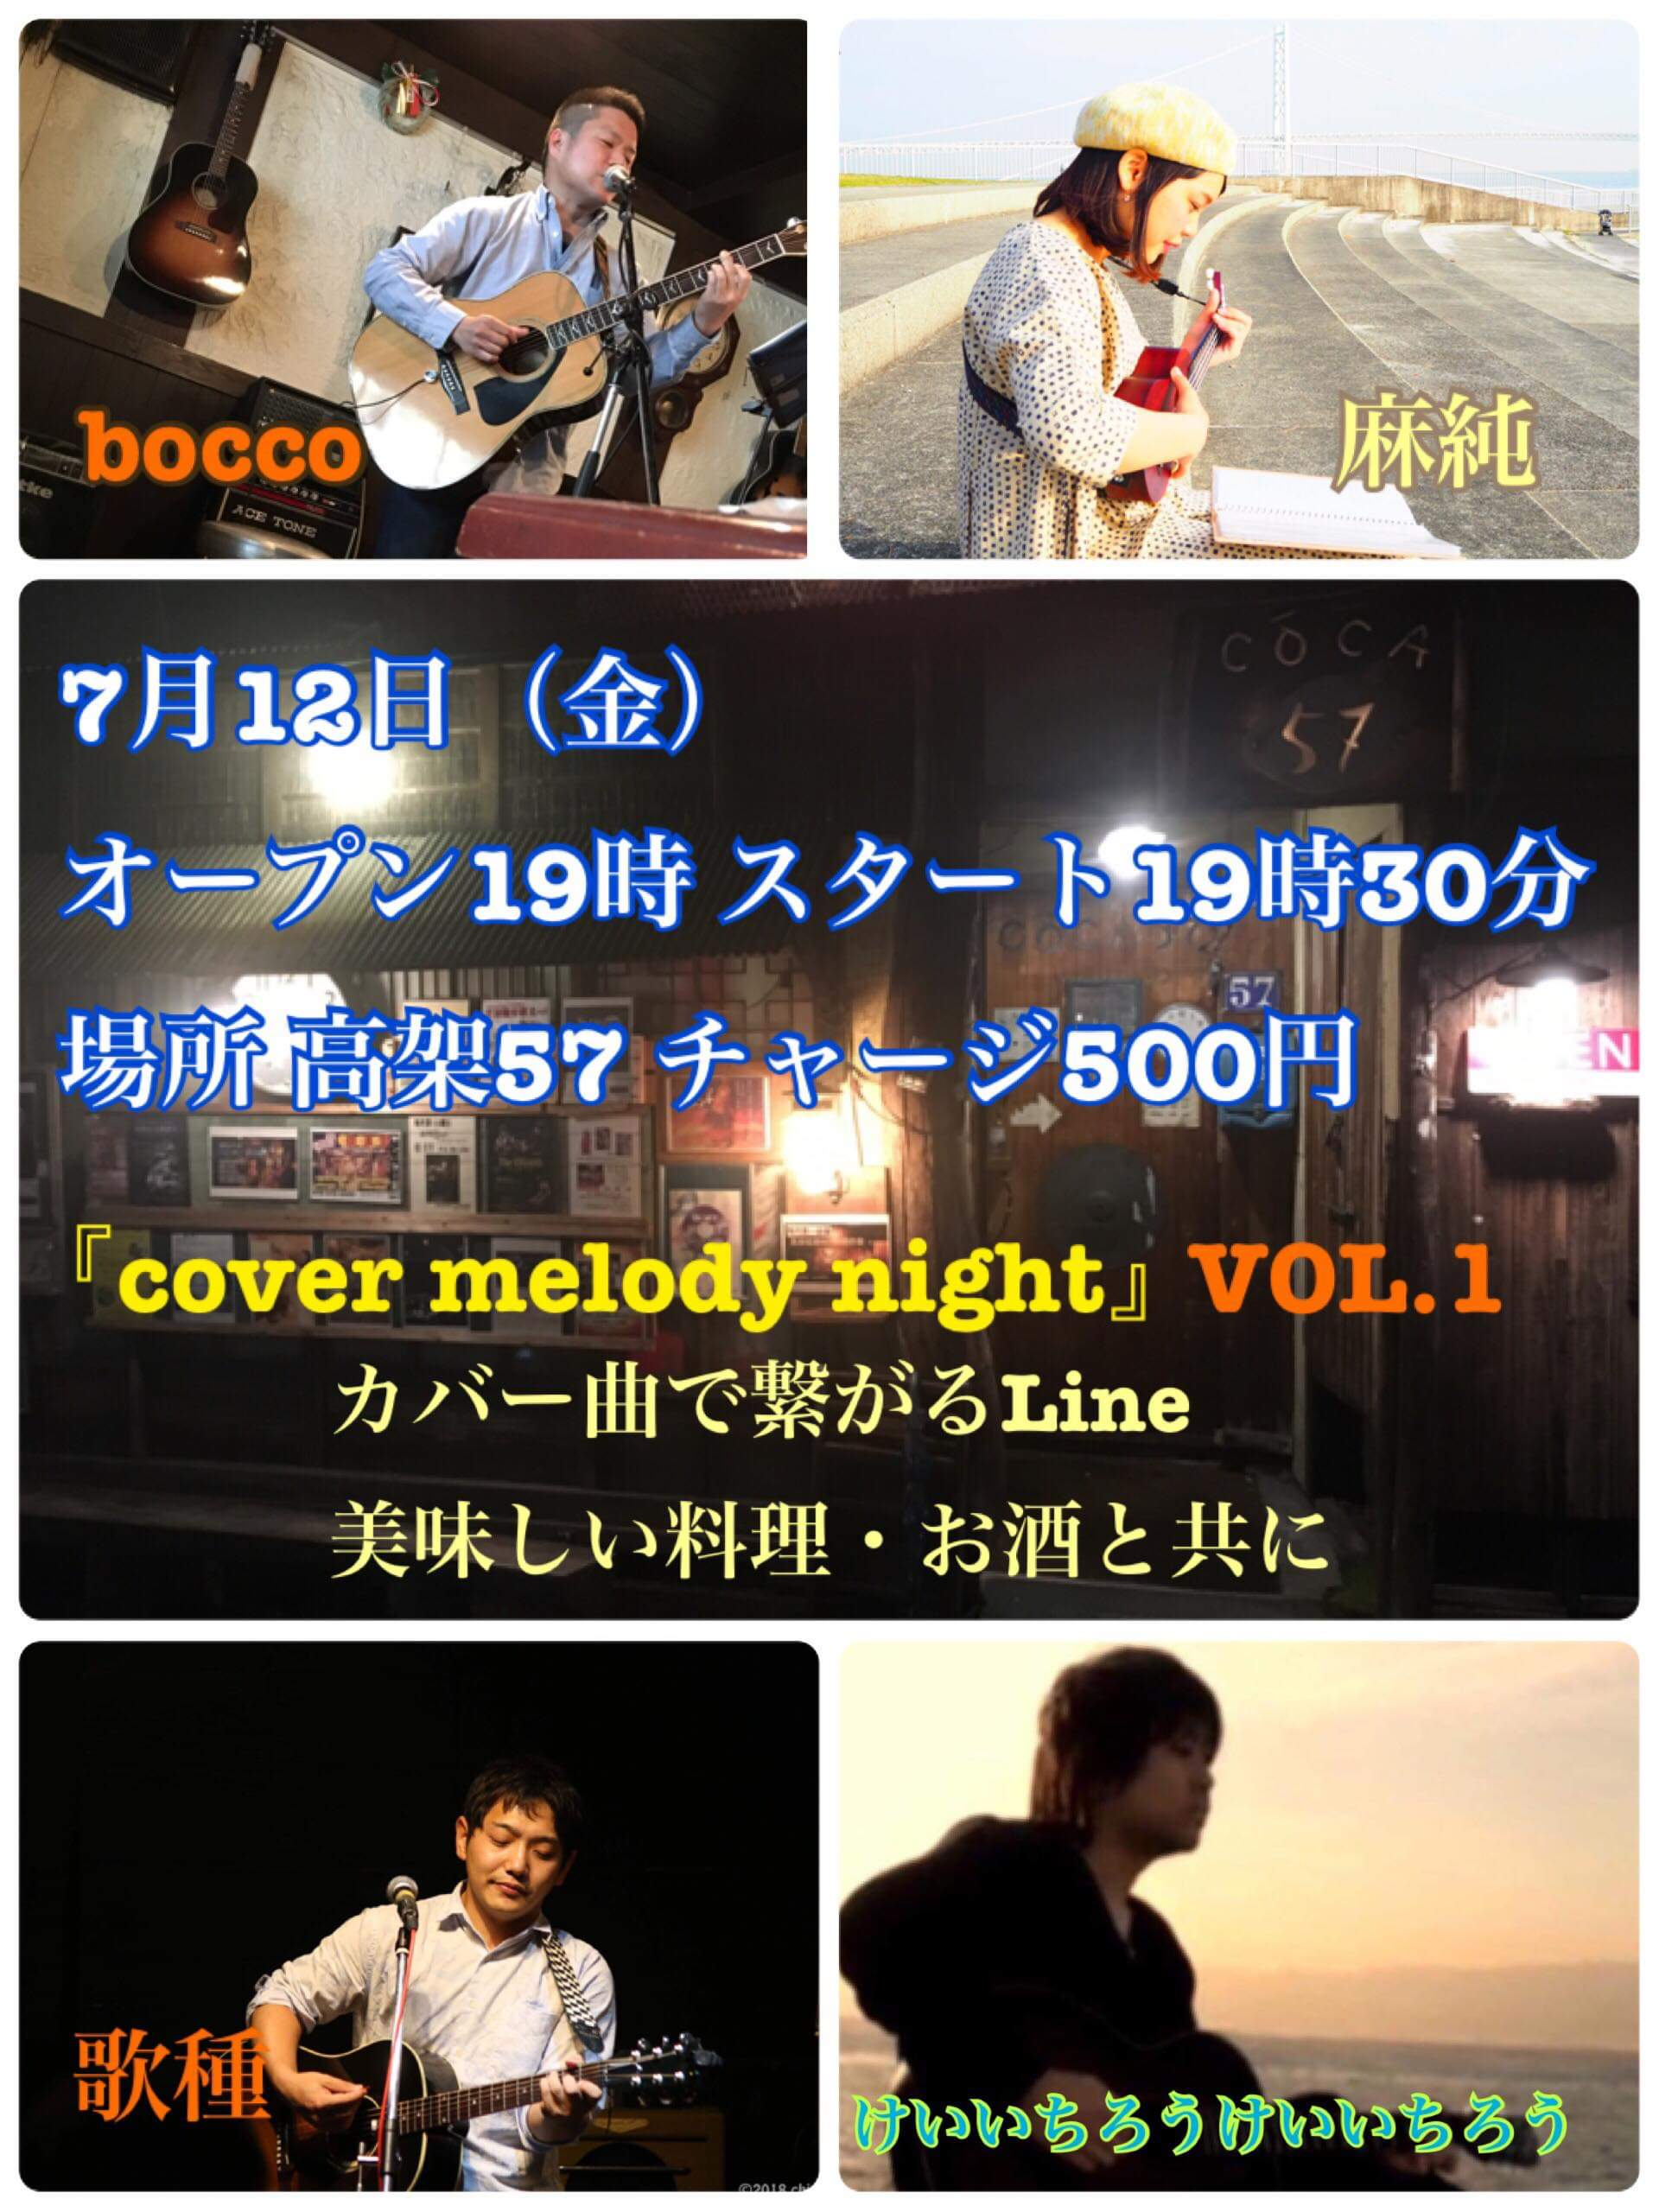 covermelodynight 19時開場